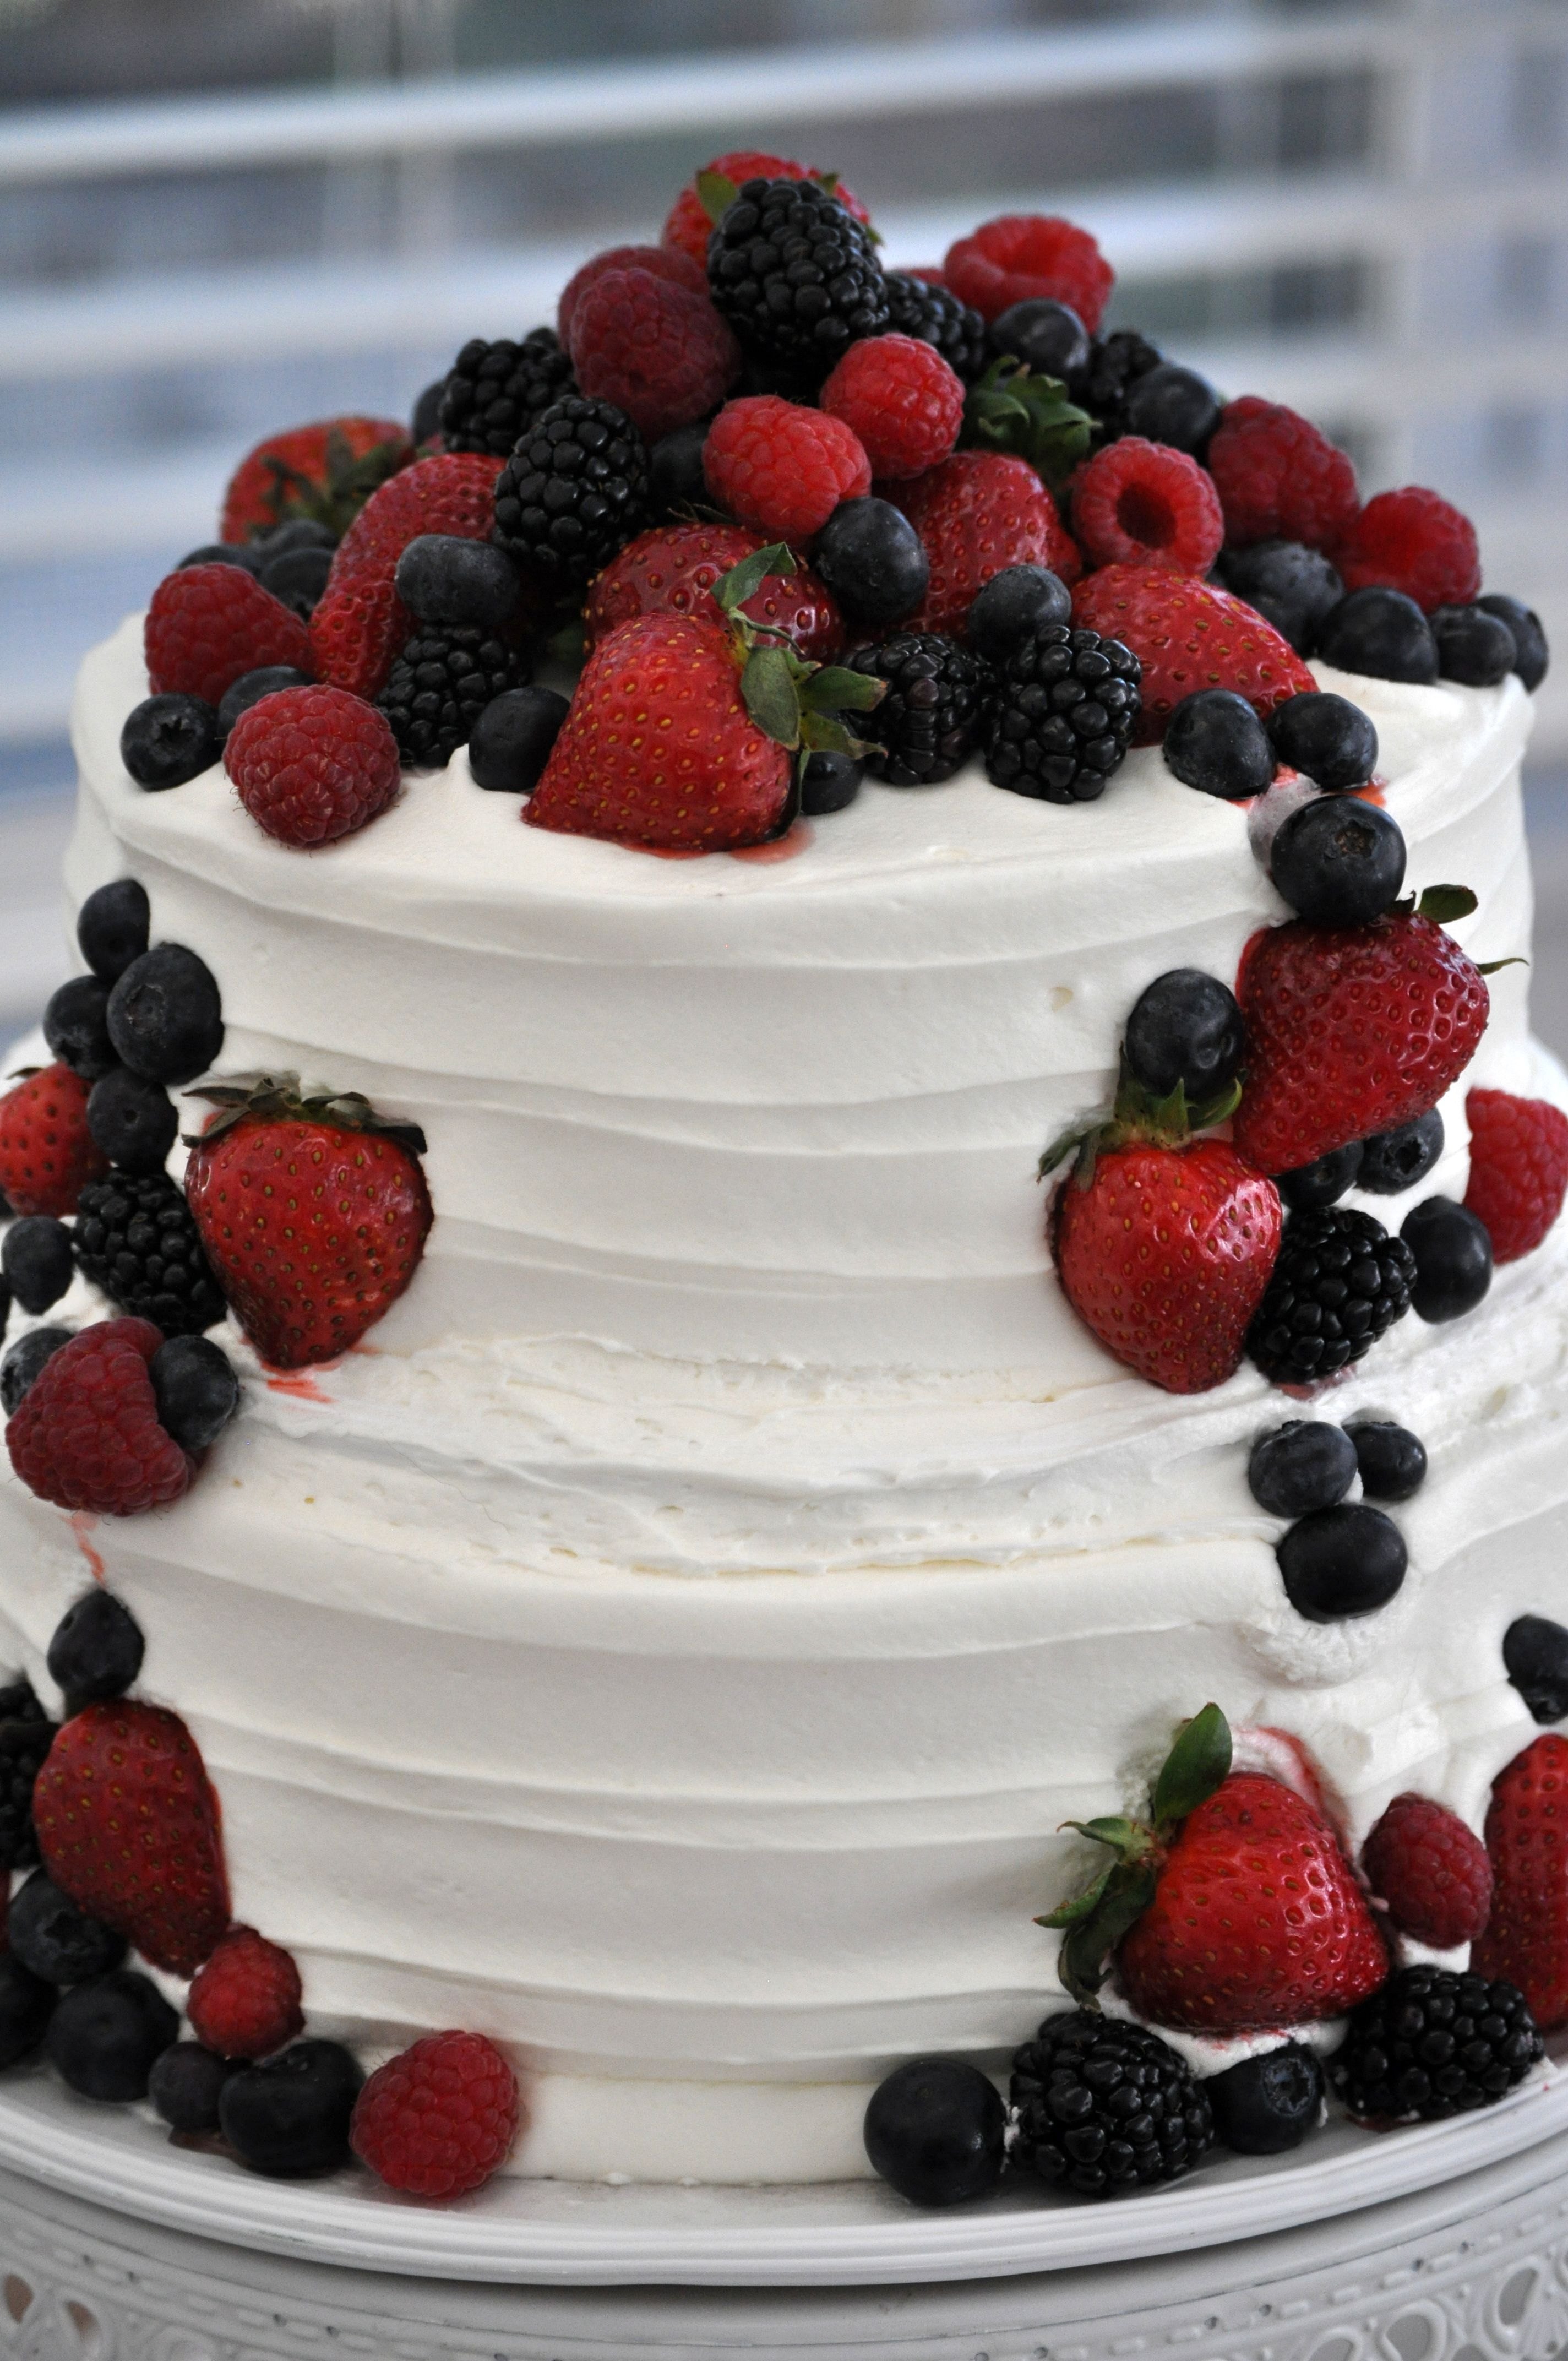 DIY wedding cake that looks beautiful and delicious